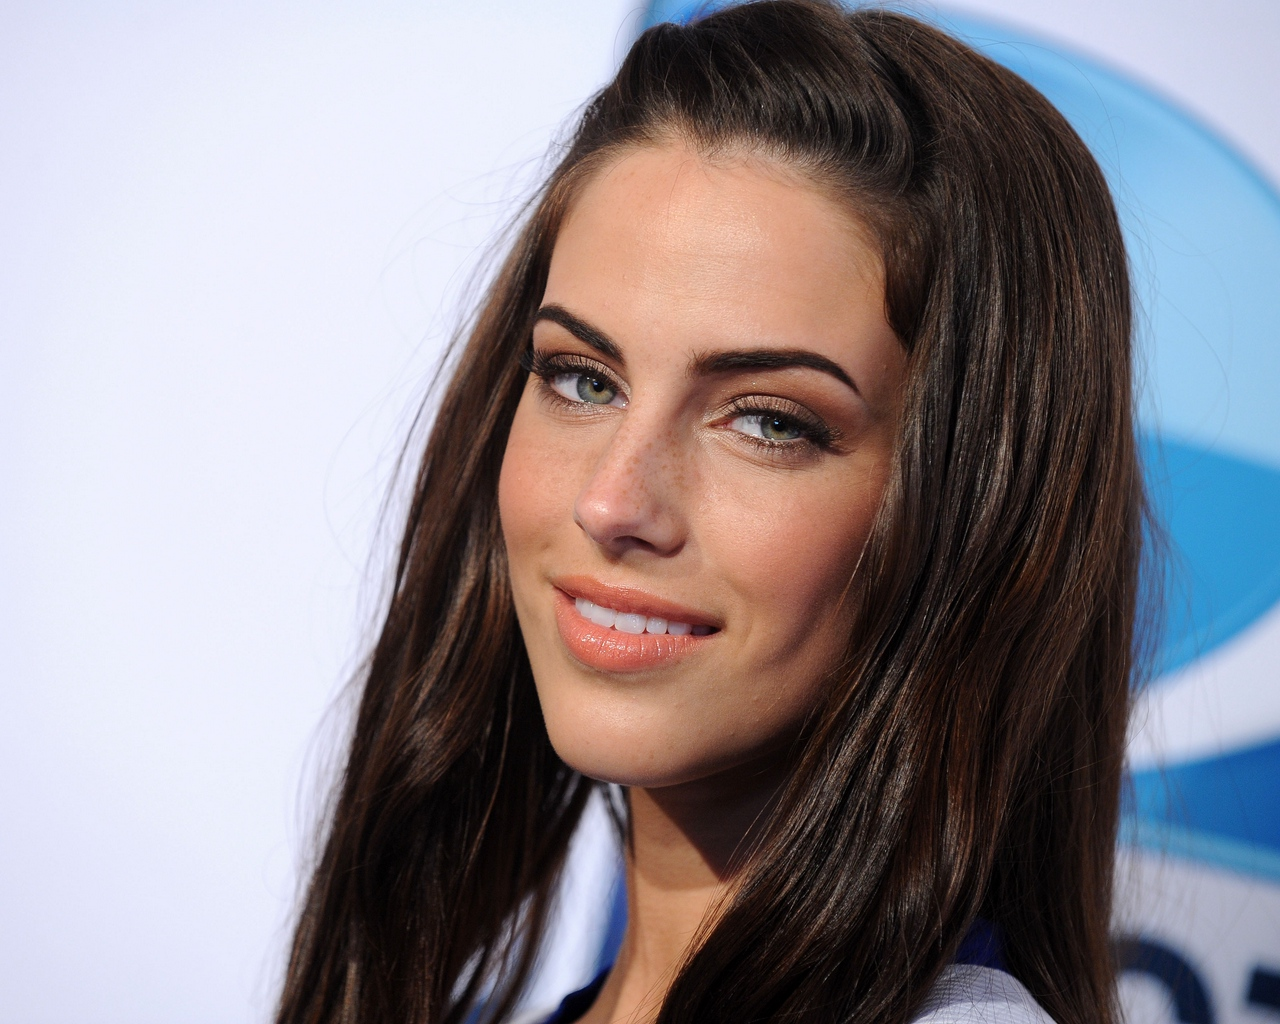 1280x1024 - Jessica Lowndes Wallpapers 21